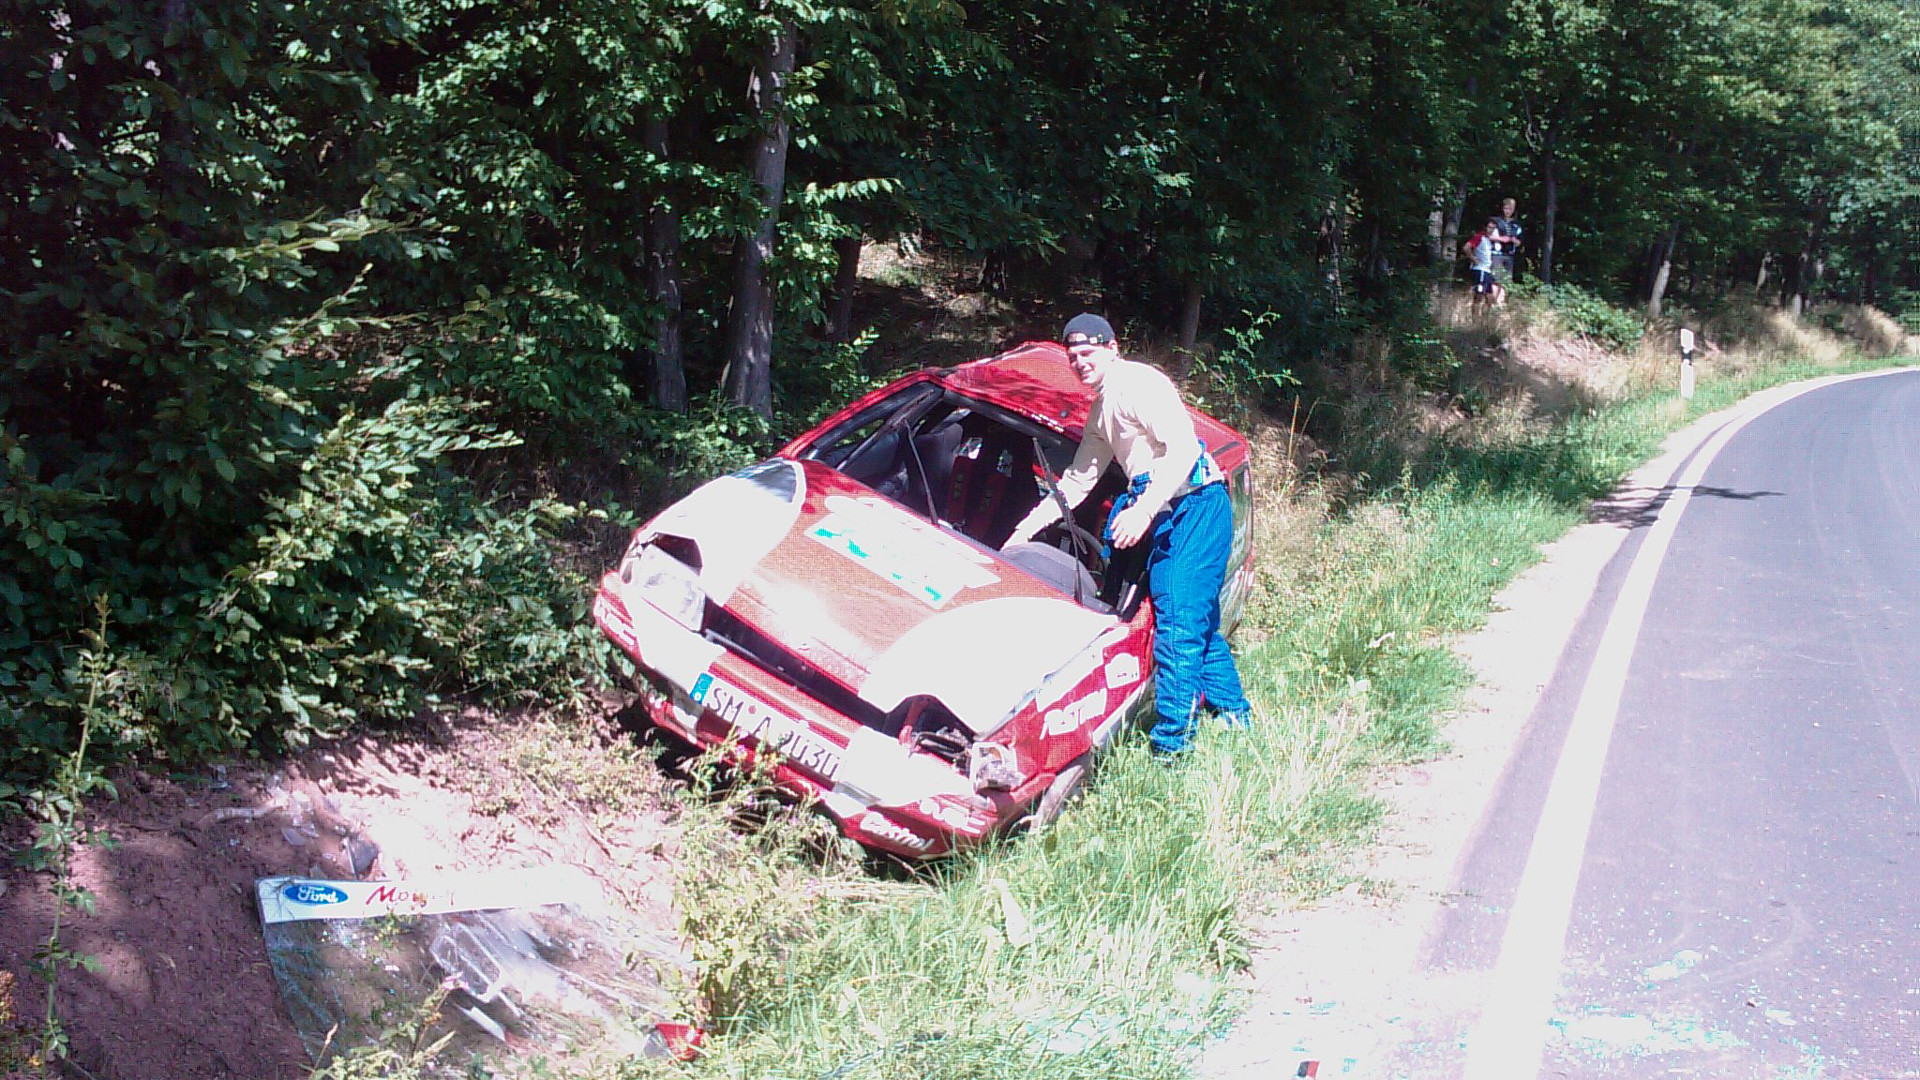 damaged rally car at the side of the road